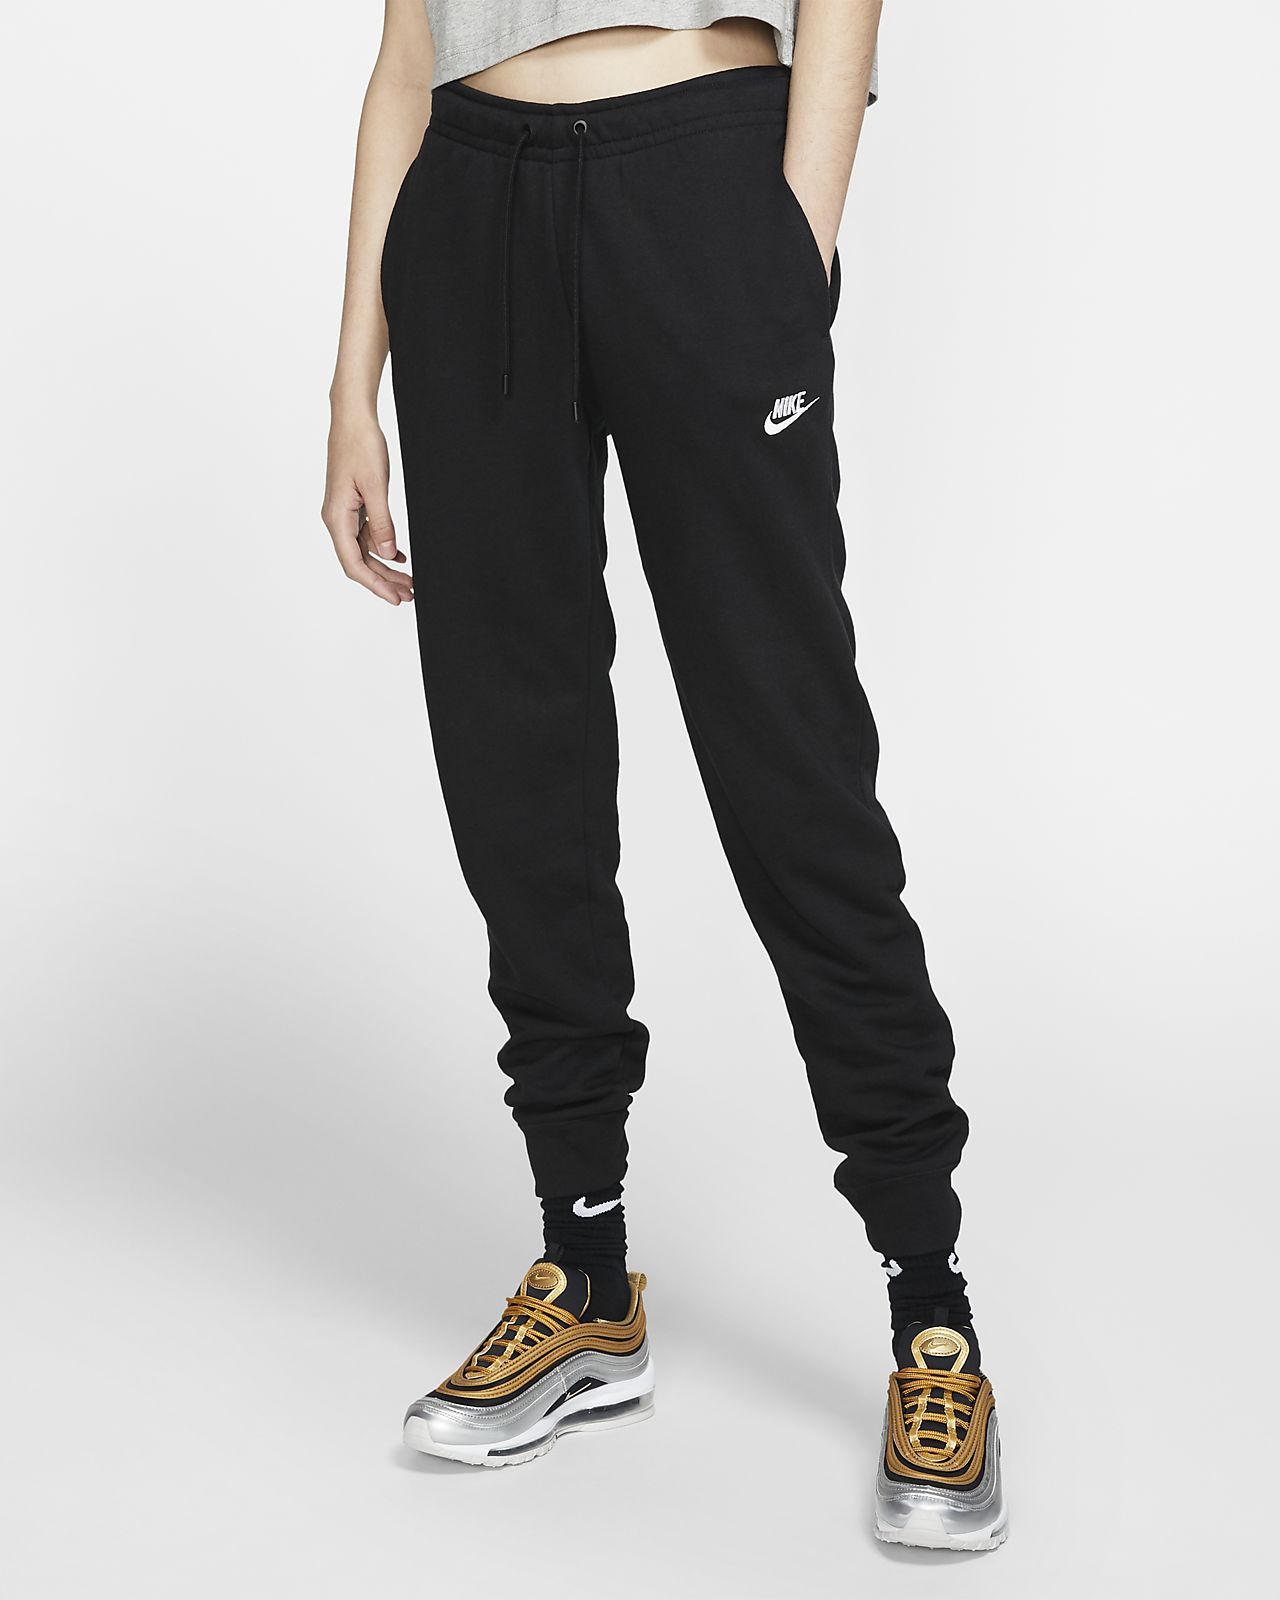 adc3ed4feb545 Nike Sportswear Essential Women's Fleece Pants. Nike.com